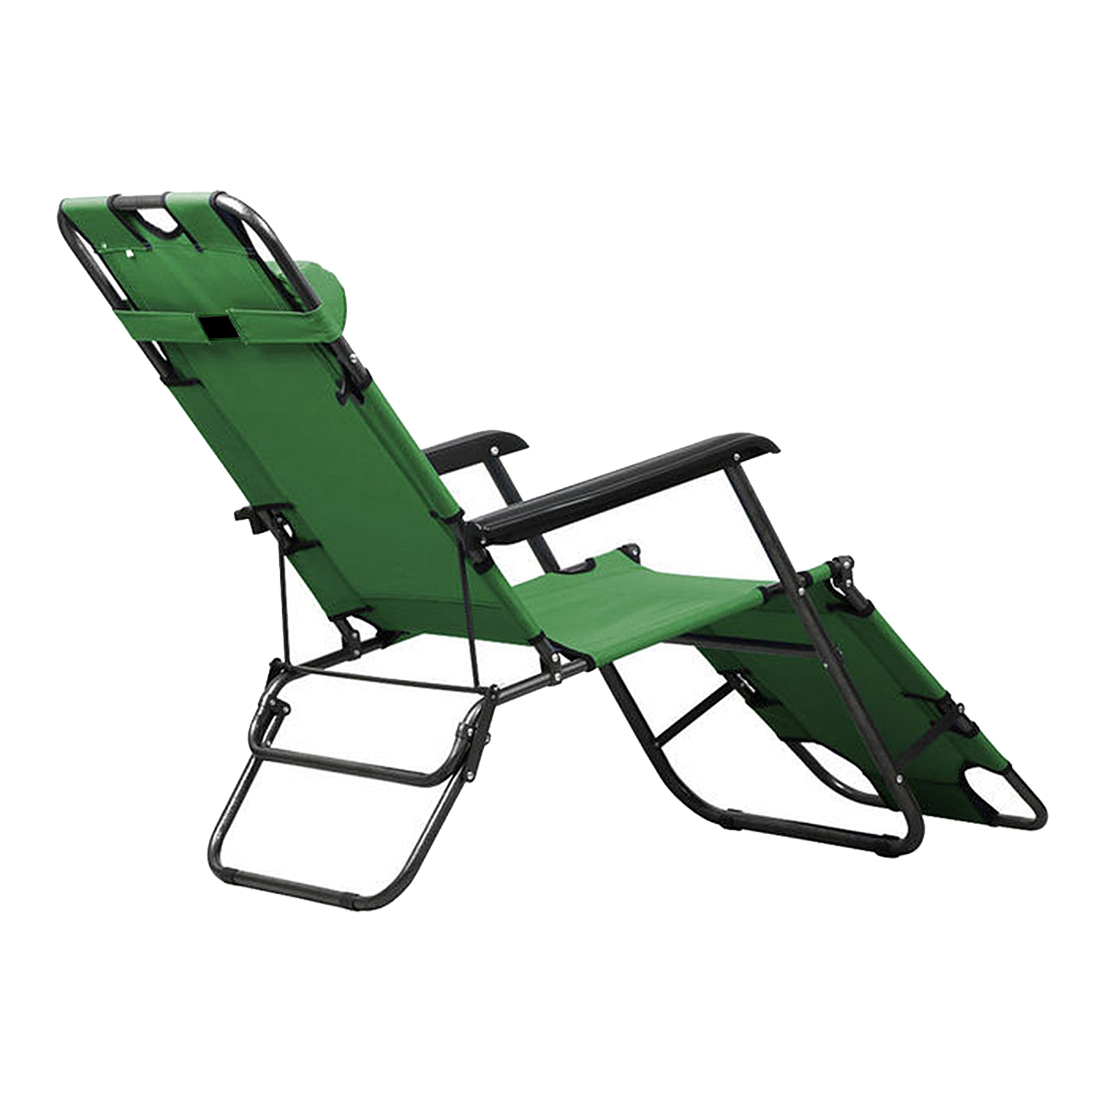 Beach lounge chair portable - Metal Folding Chaise Lounge Chair Patio Outdoor Pool Beach Lawn Recliner New Color Army Green